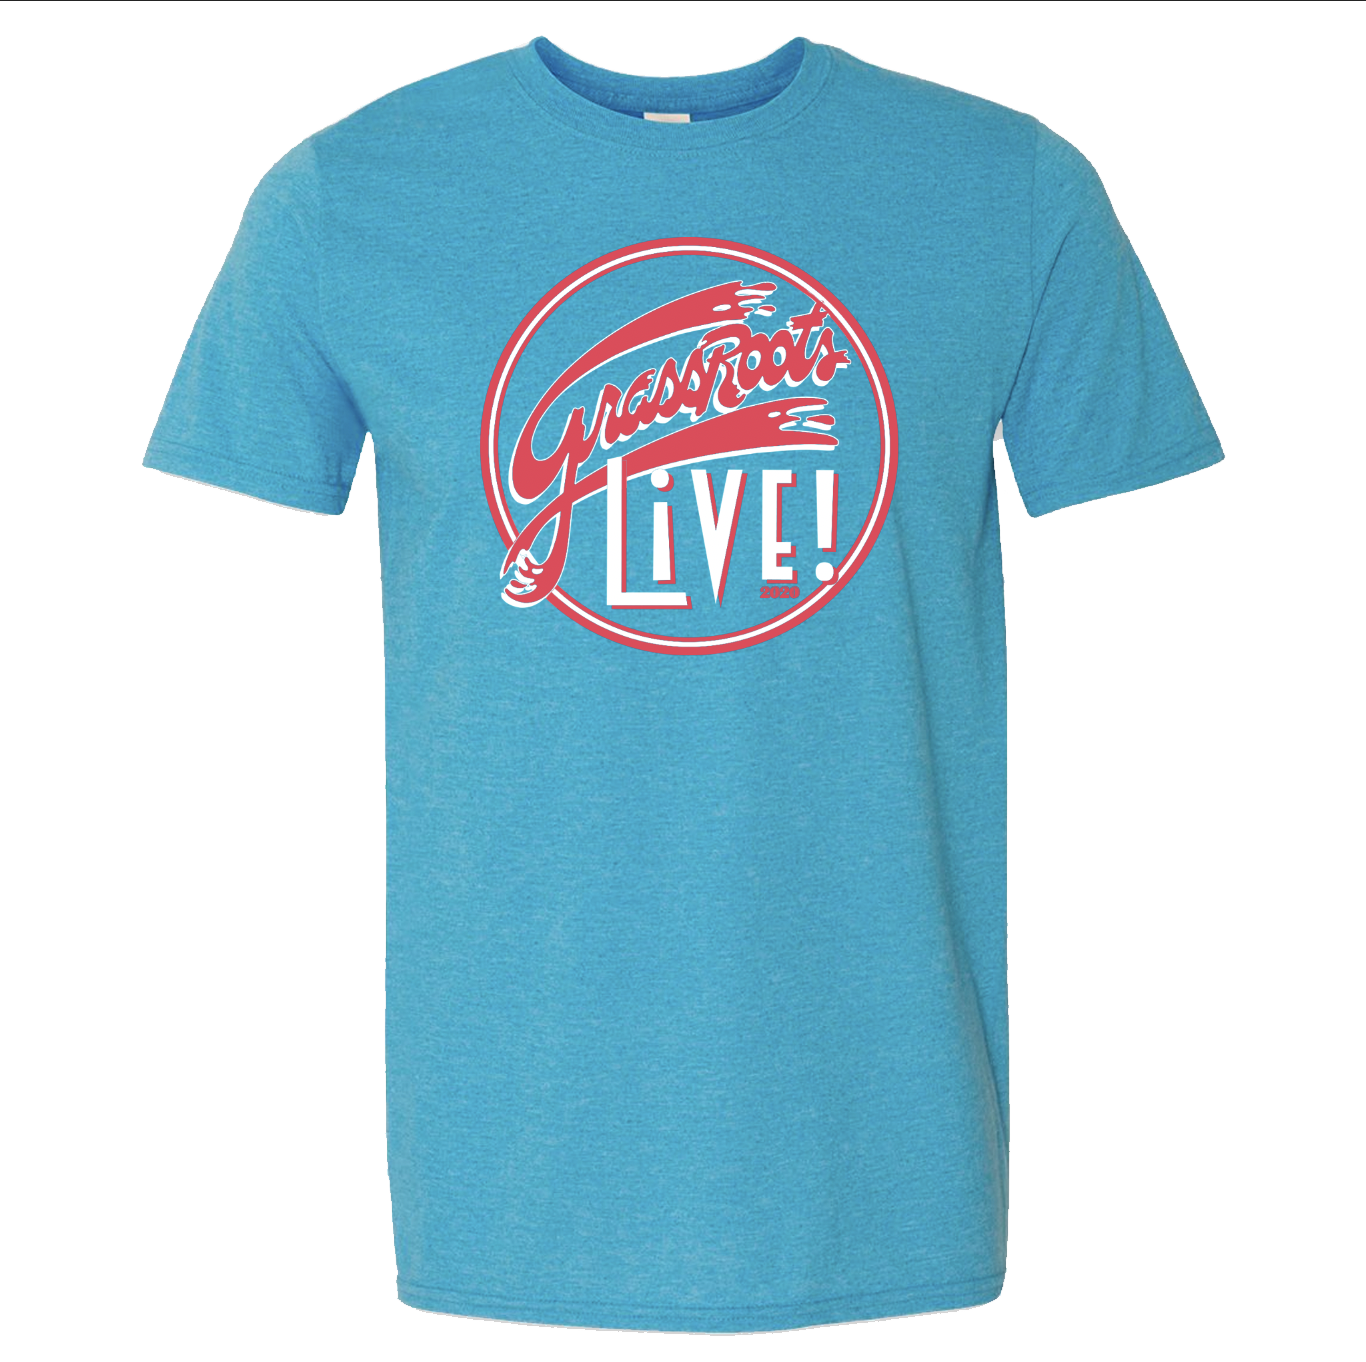 GrassRoots Festival 2020 Live Tee